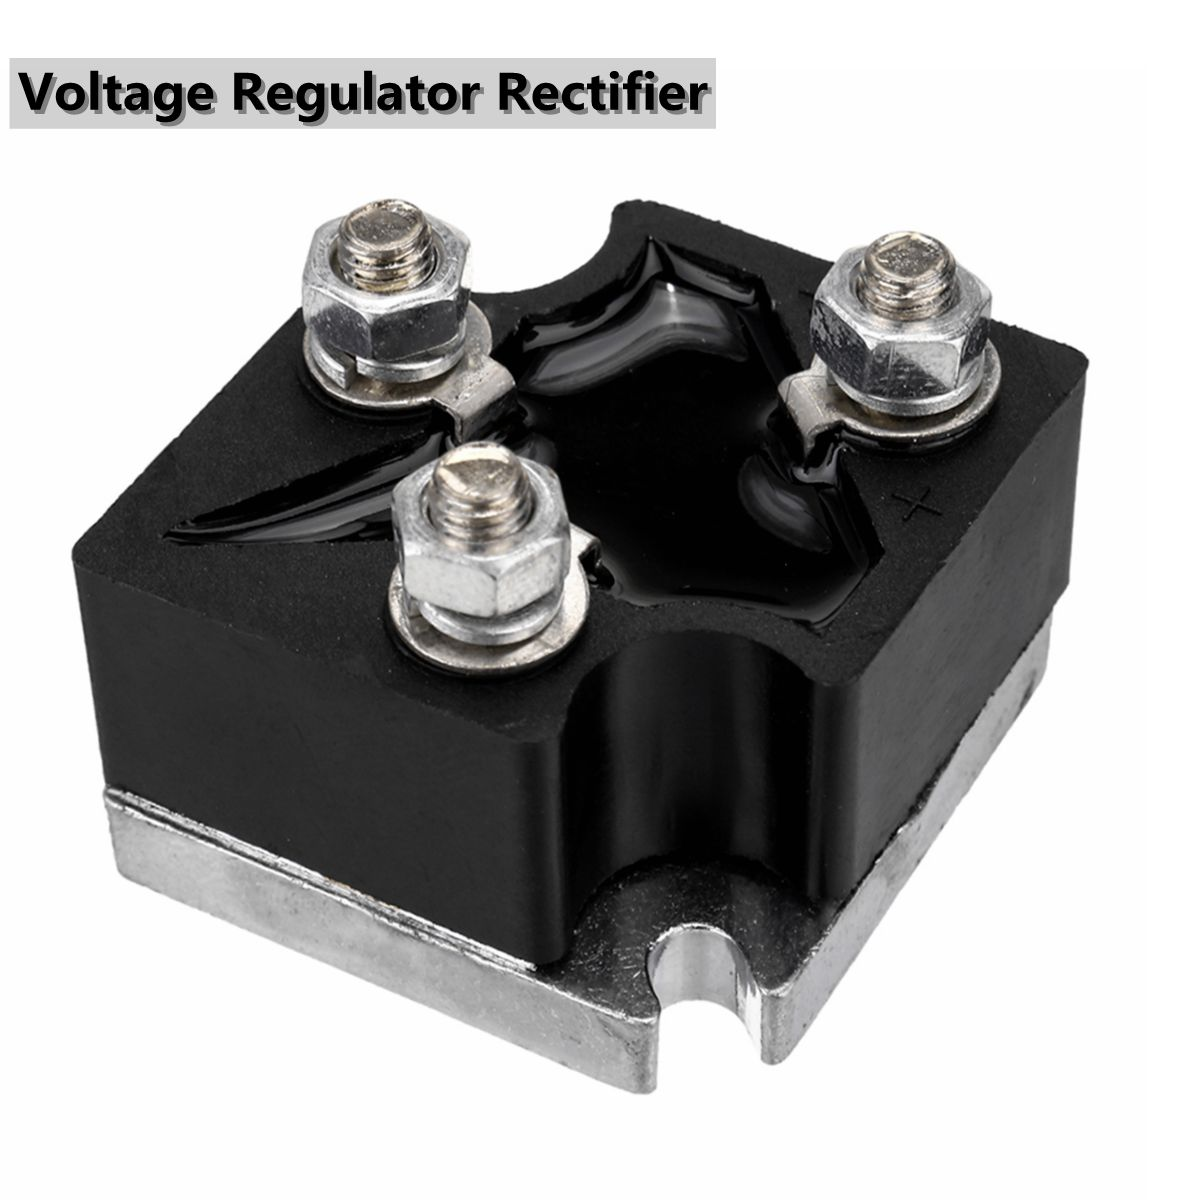 Marine Boat Voltage Regulator Rectifier For Mercury Outboard Motors 62351A1 62351A2 816770T